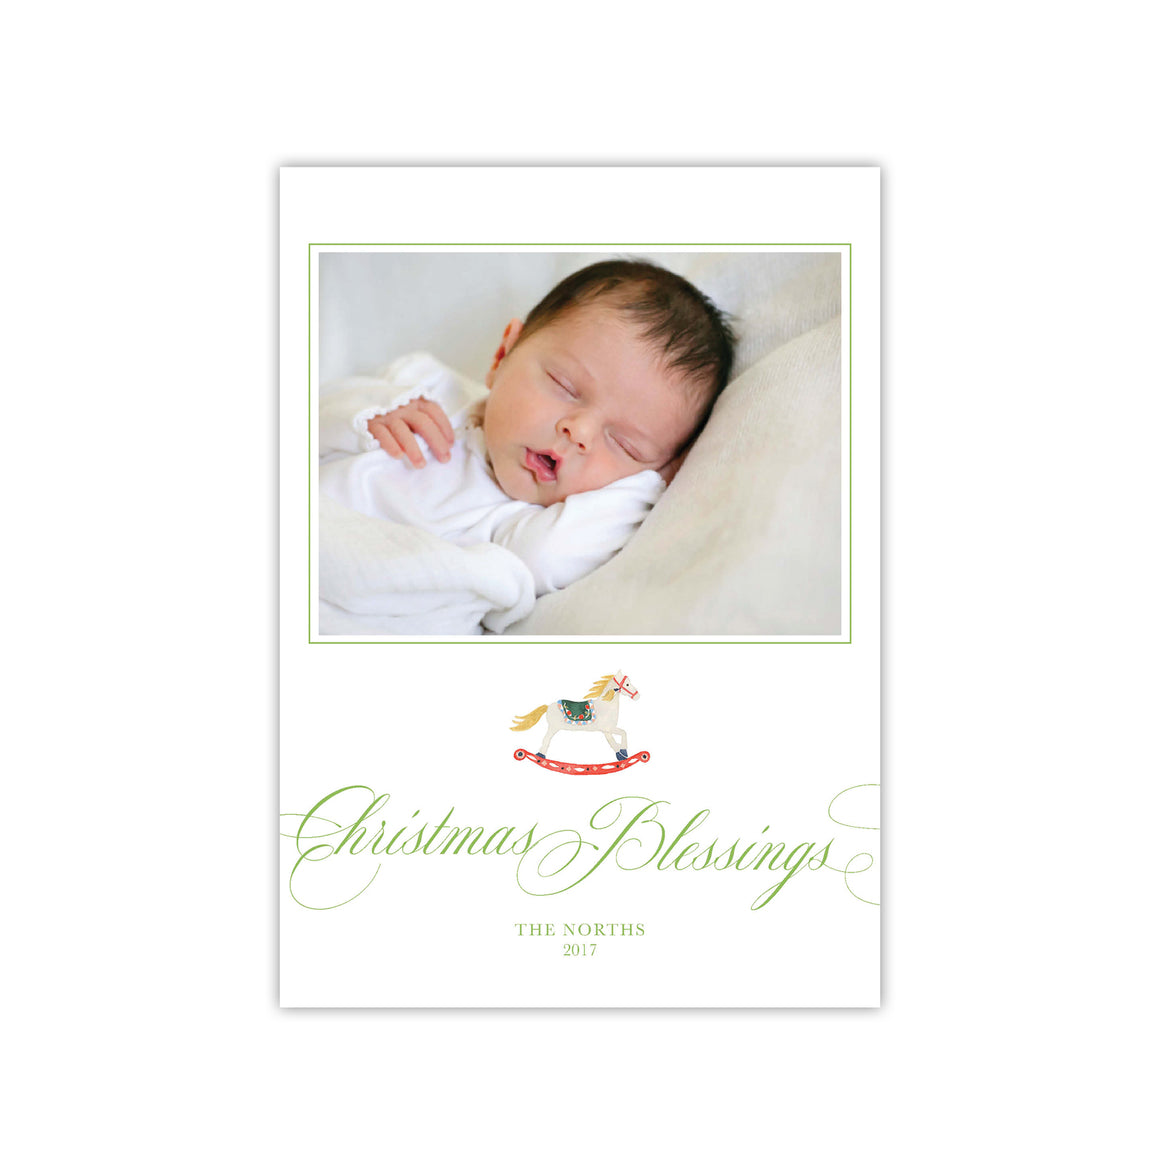 Blessings Rocking Horse Holiday Card